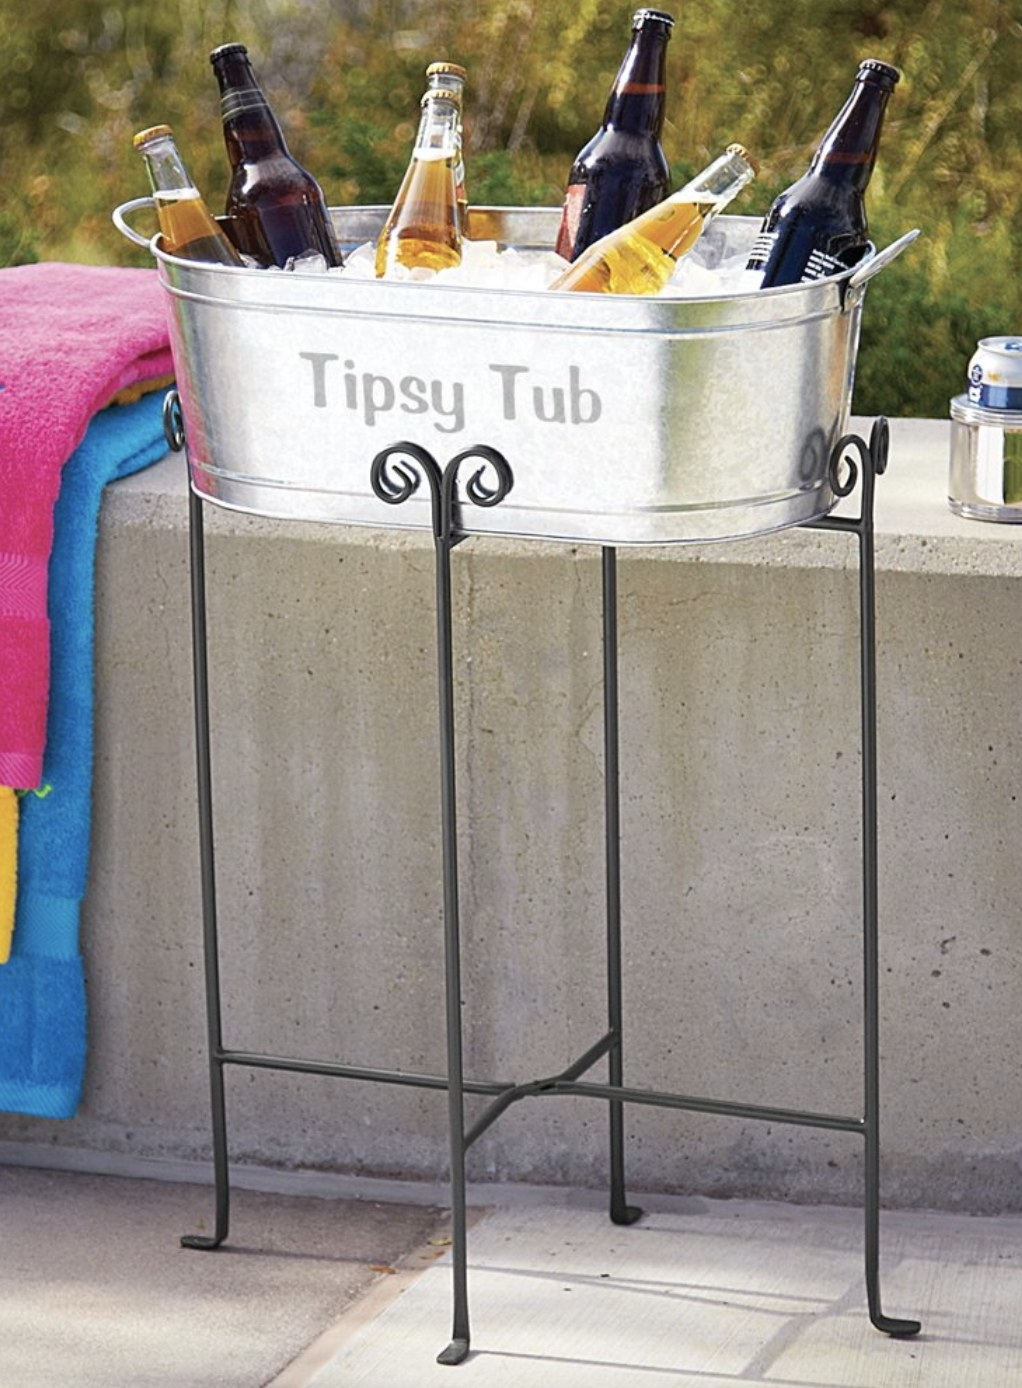 """The silver tub says """"Tipsy Tub"""", has ice, is holding drinks and is atop a black iron stand"""